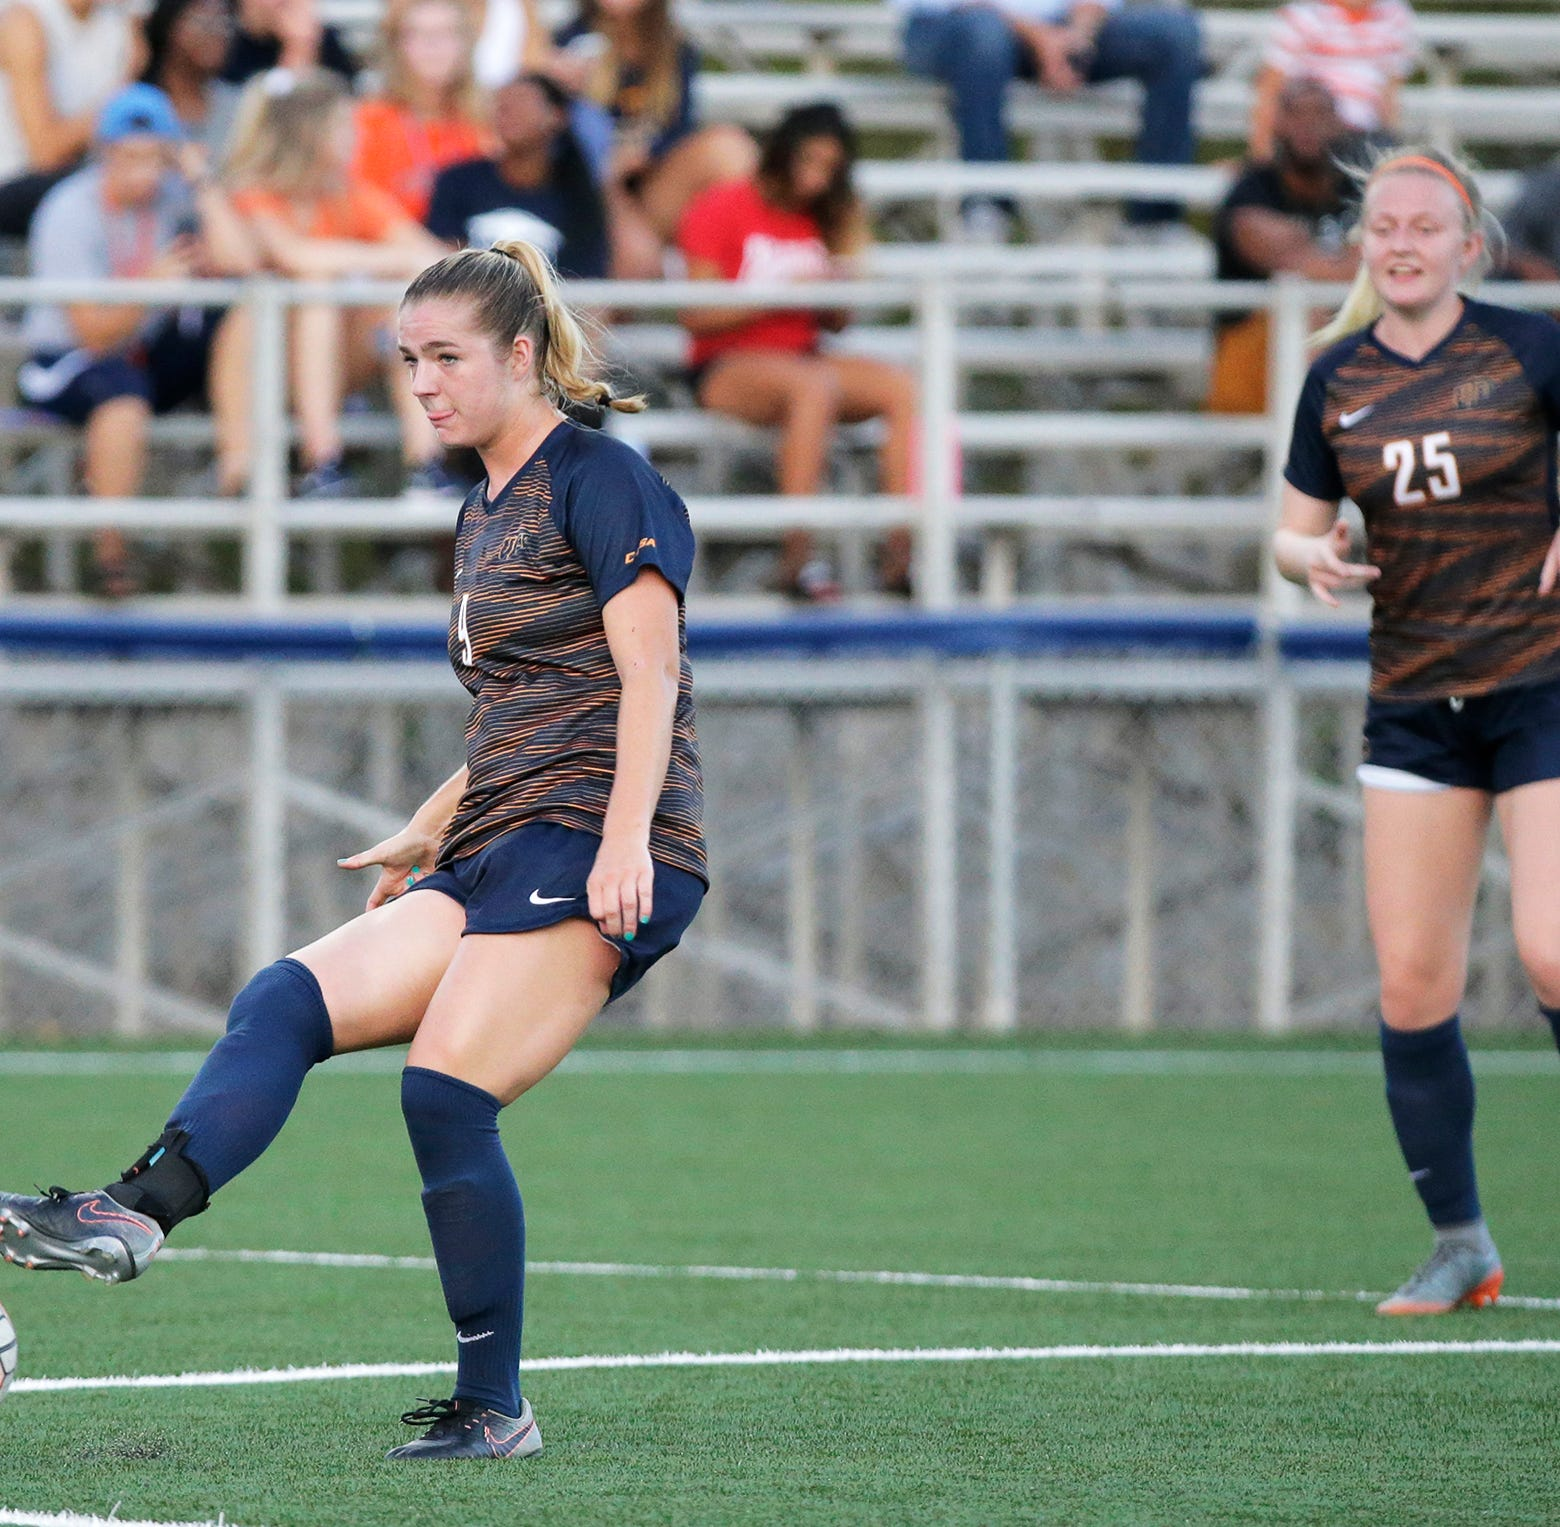 UTEP soccer raises awareness of breast cancer; mission is personal for coach